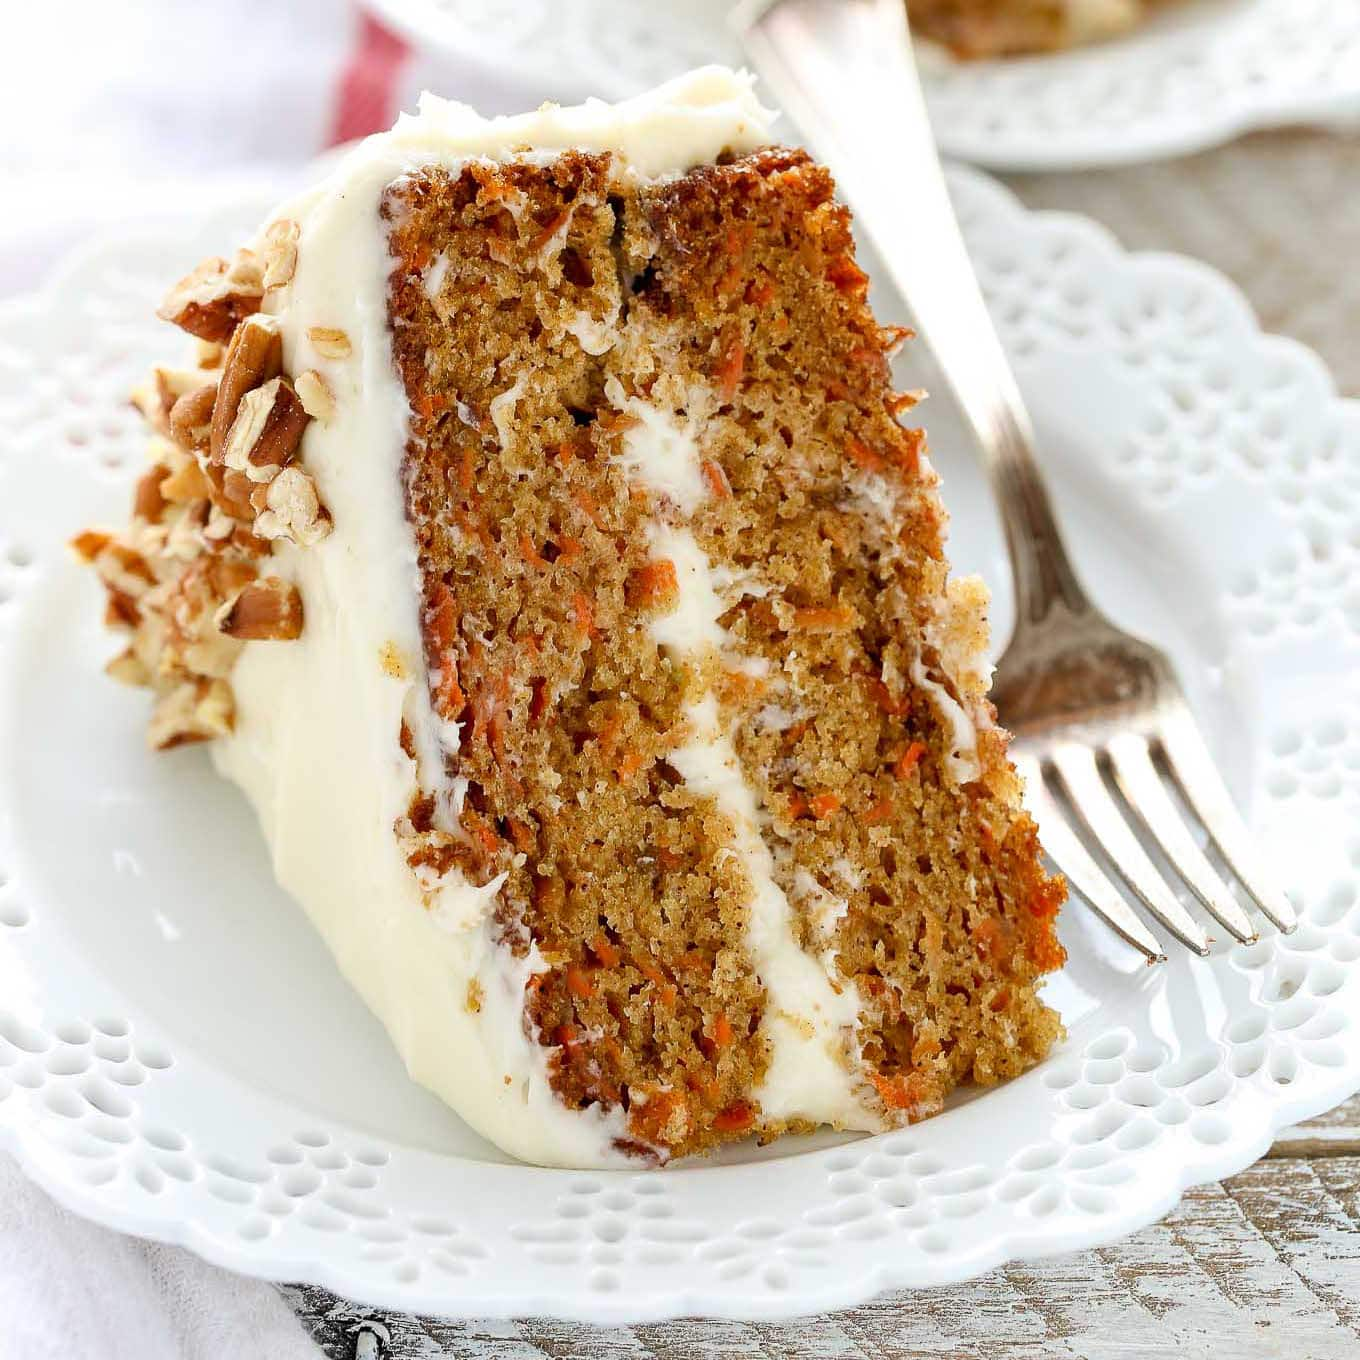 Best carrot cake recipe with pineapple and raisins